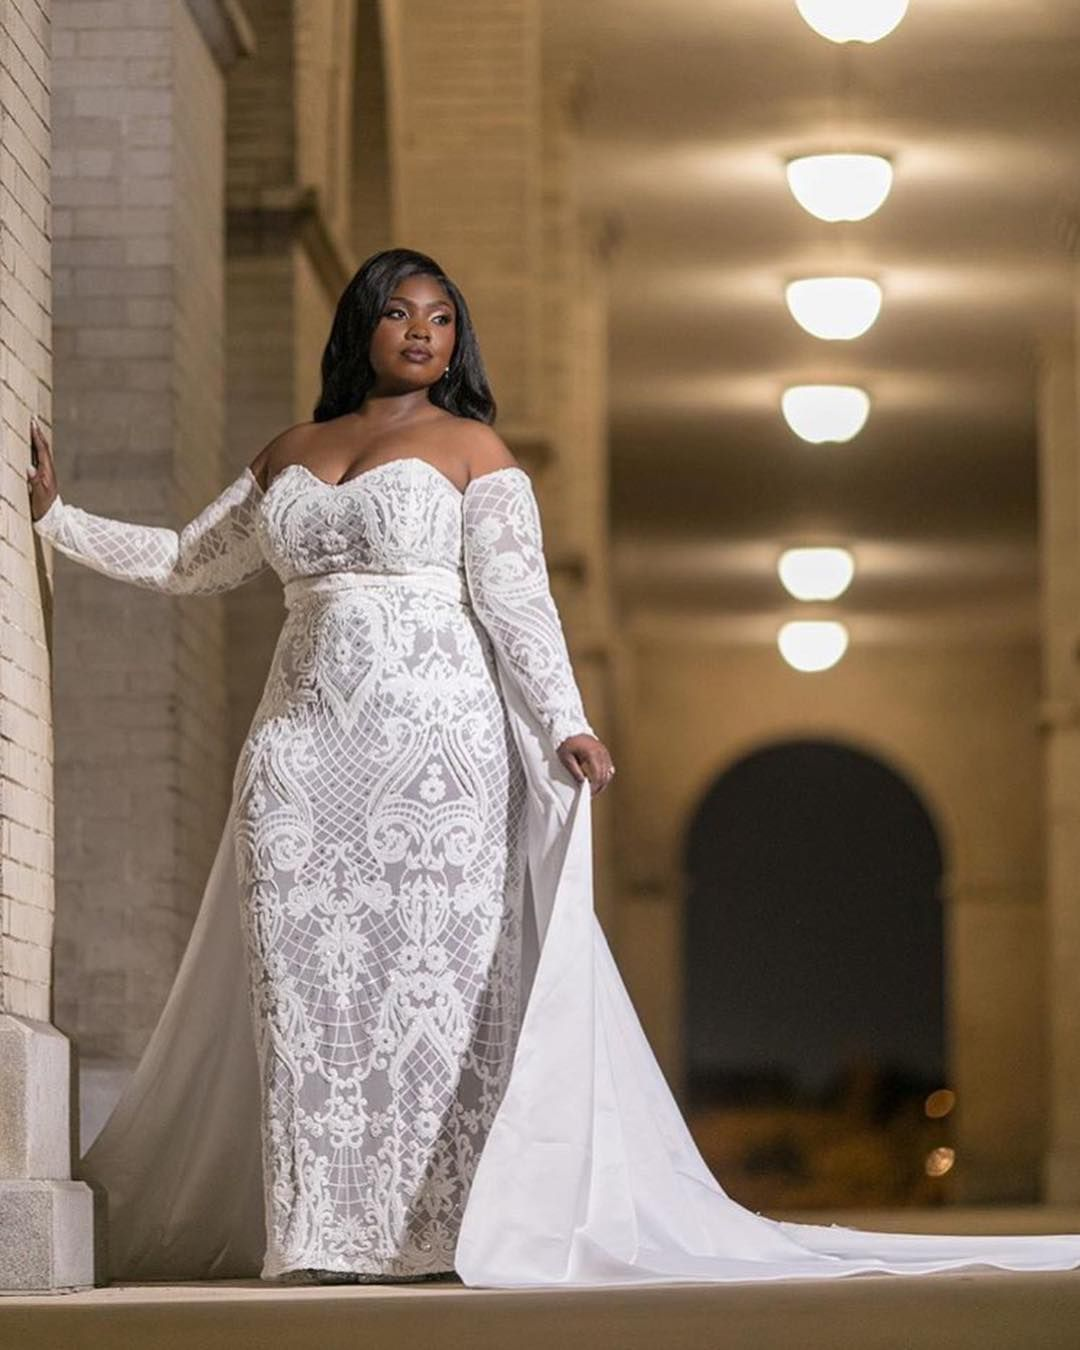 c7c12c5e36310 Long sleeve  plussize  wedding  gowns are available. We specialize in  custom wedding  gowns for  brides of all shapes   sizes. Have this  dress  custom made ...